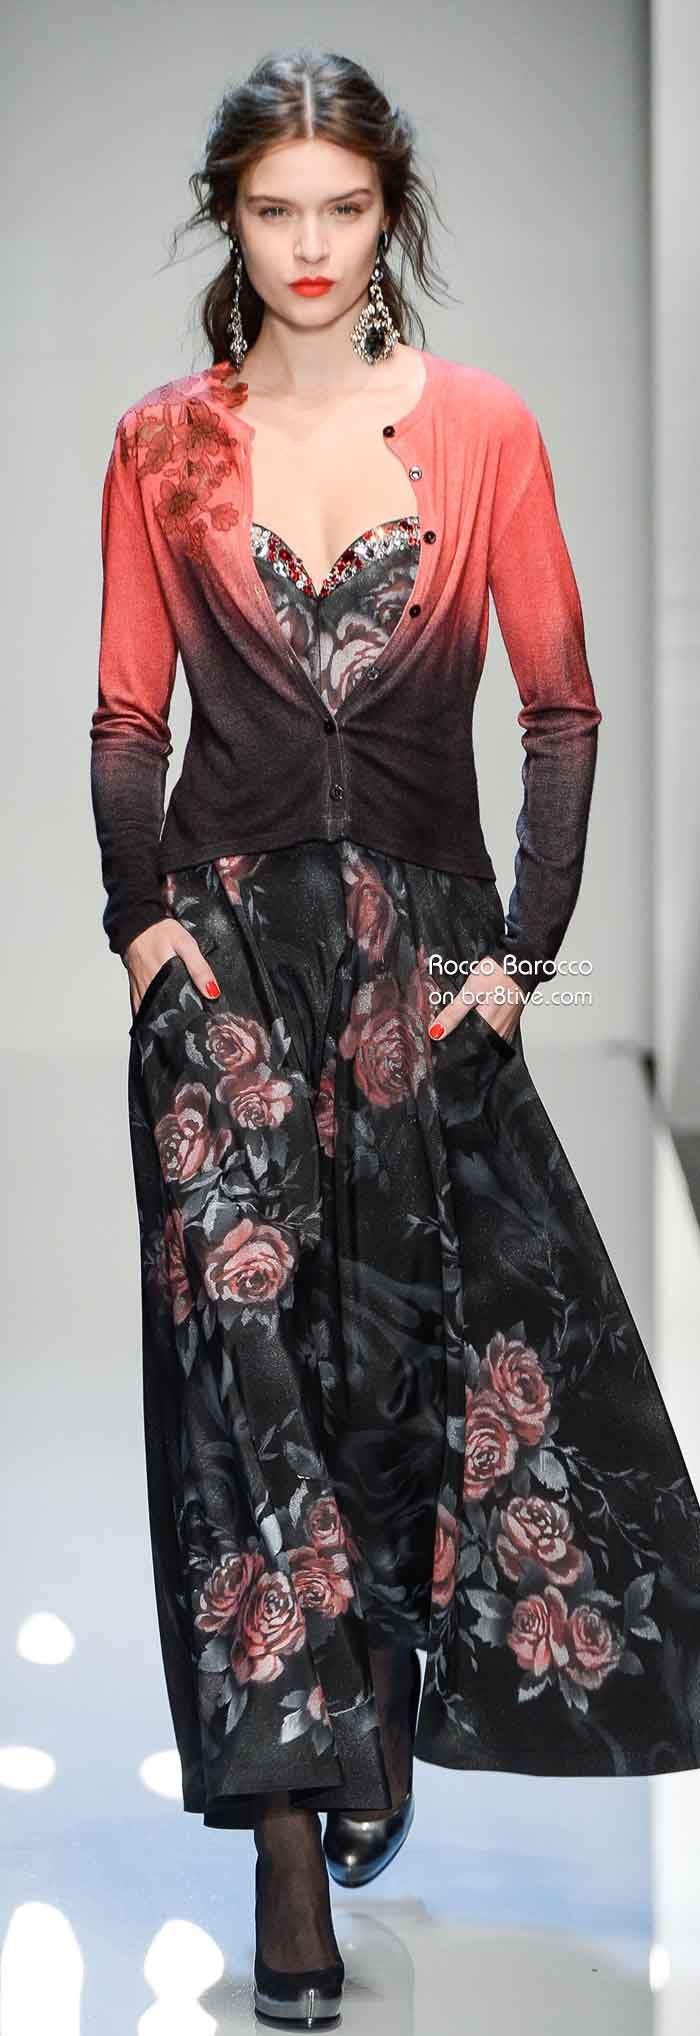 Roccobarocco Fall Winter 2013-14 Ready to Wear Milan | Liking the palette, the cardi over maxi dress, the ombre of the cardi itself -- totally wearable, drs Ess it down or up!